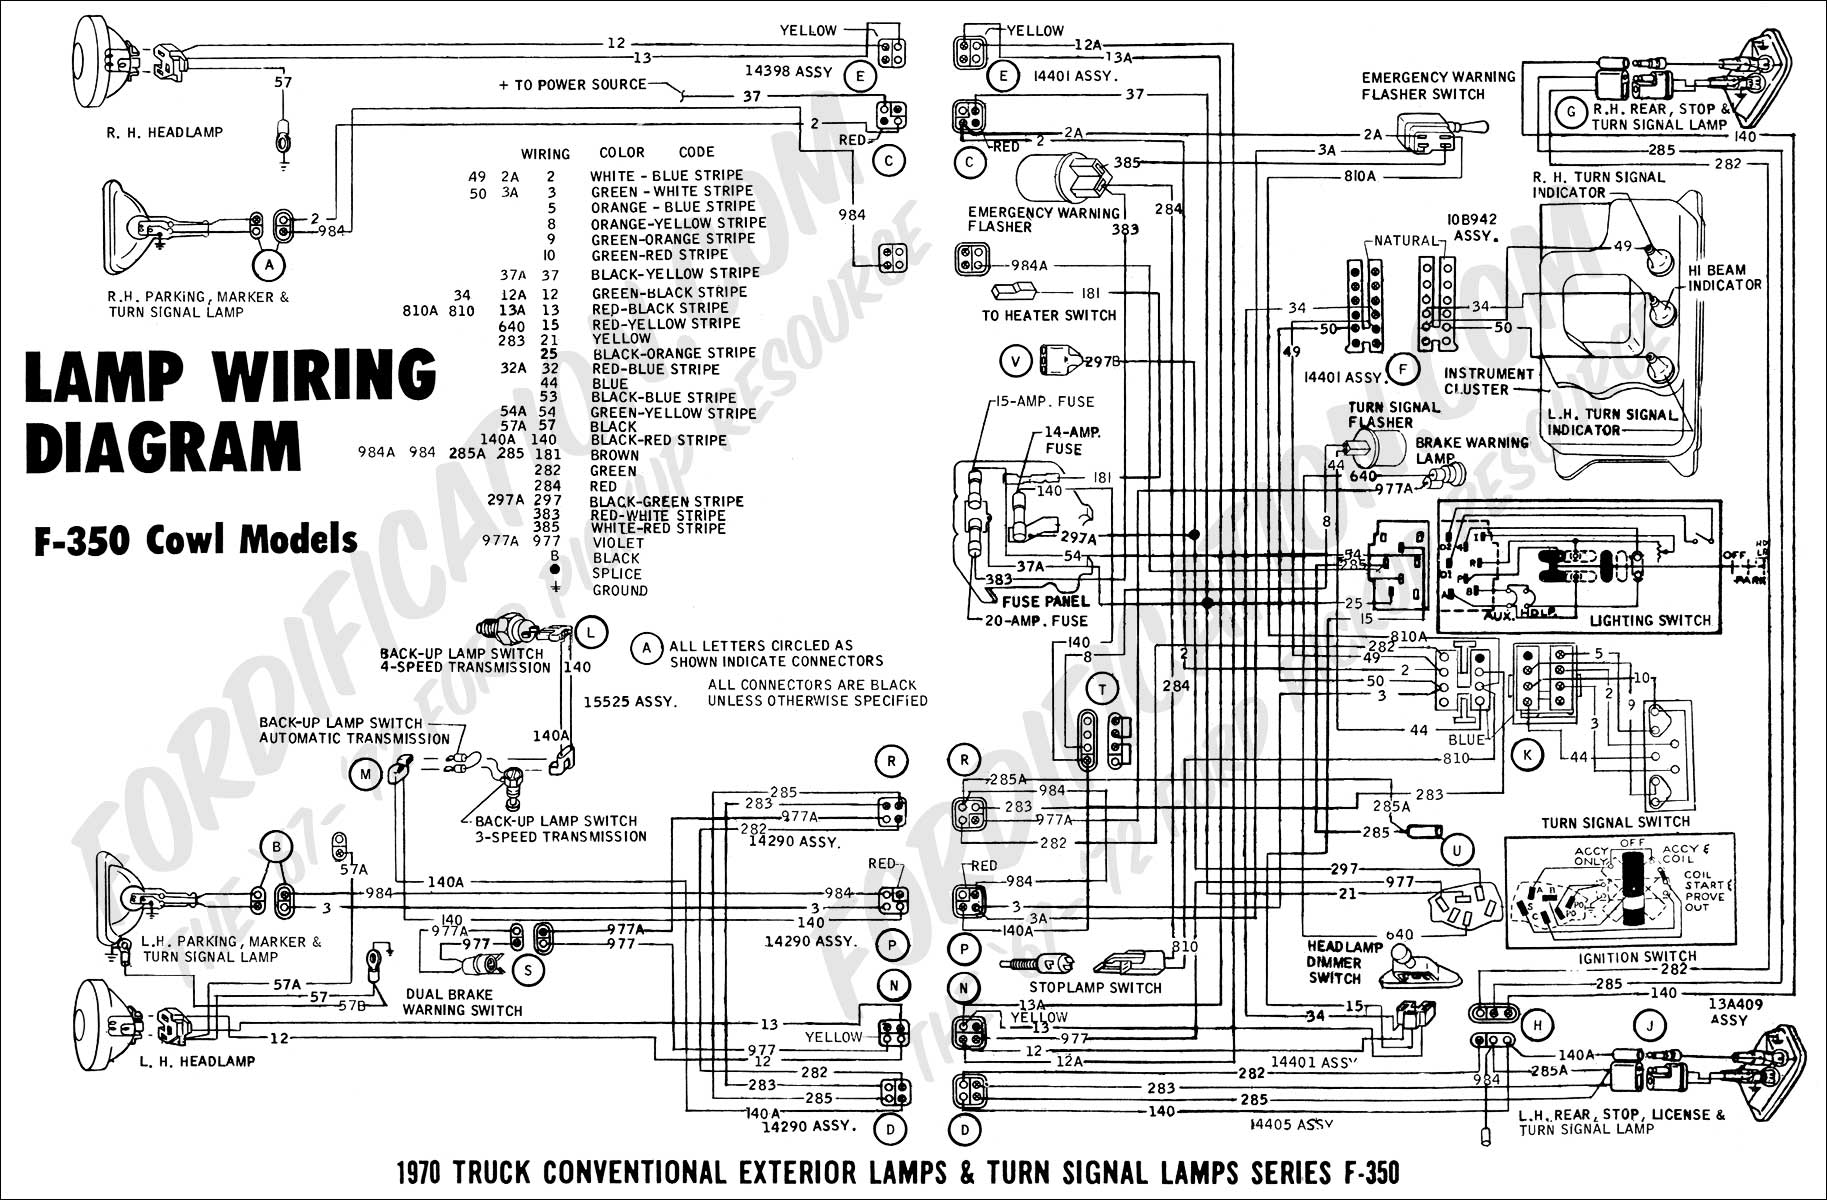 wiring diagram 70F350cowl_lights01 wiring diagram for 29 ford model a readingrat net ford car wiring diagrams at soozxer.org